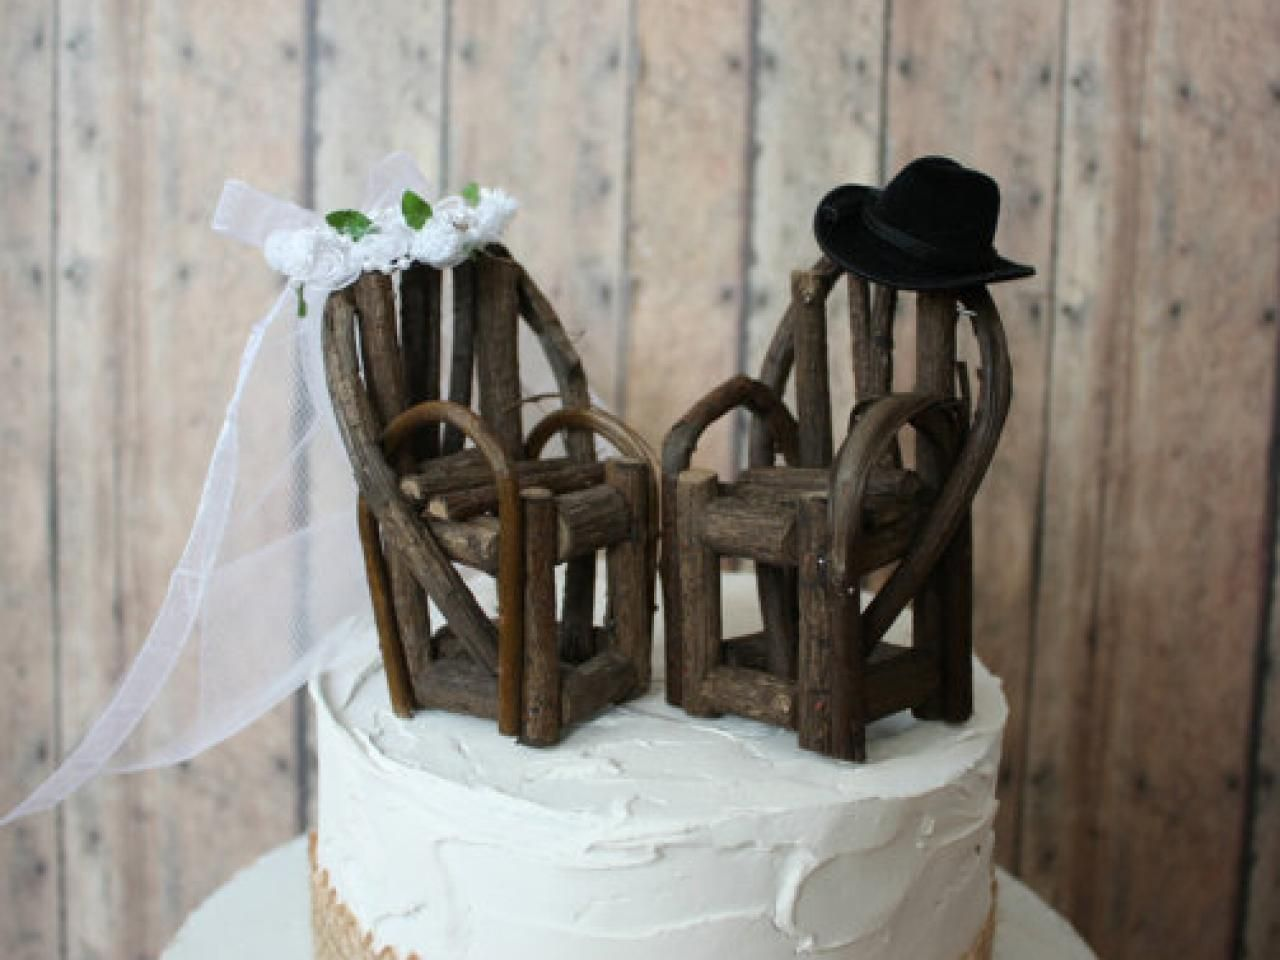 Wedding decorations to make yourself  Rustic Wedding Decorations You Can Make  Diy wedding cake DIY